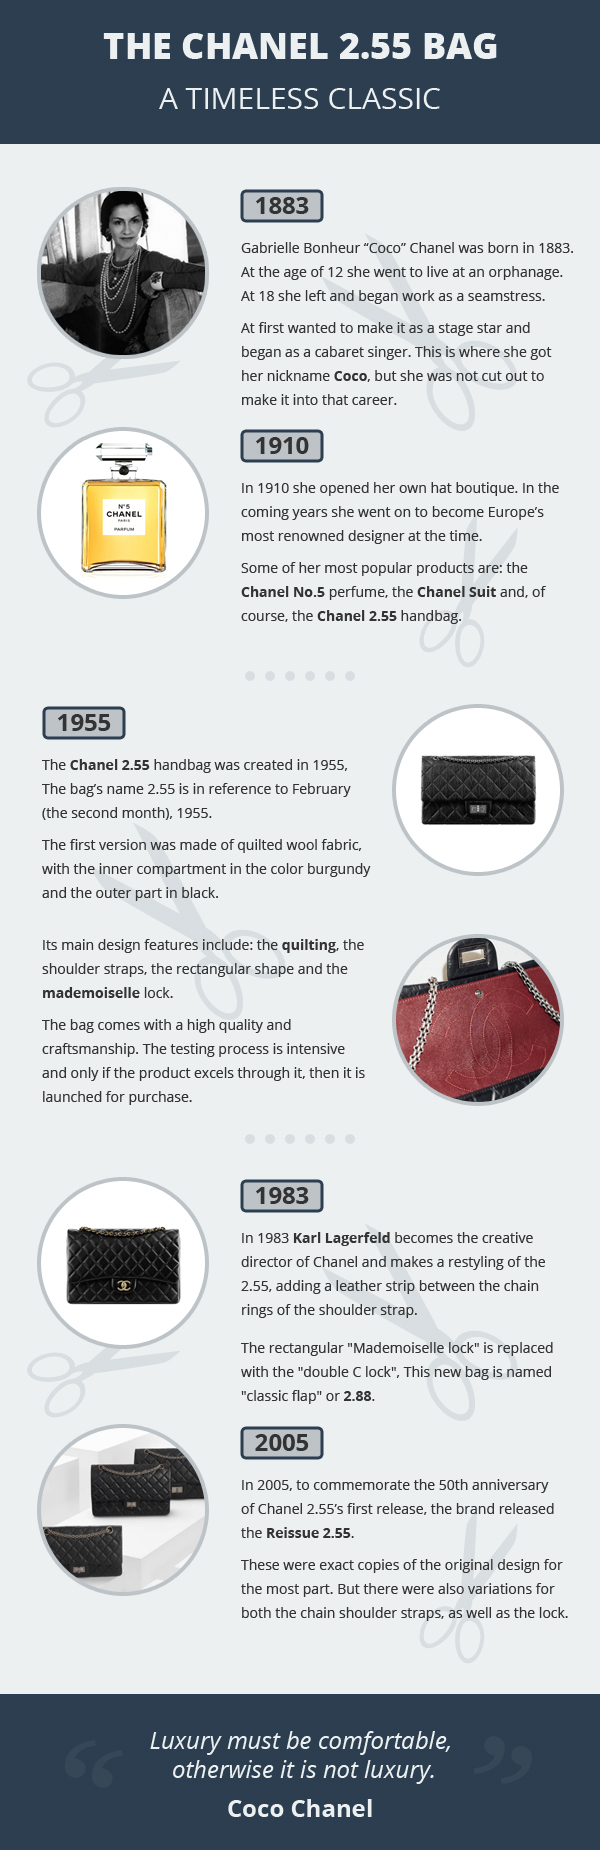 History of the Chanel 2.55 Handbag